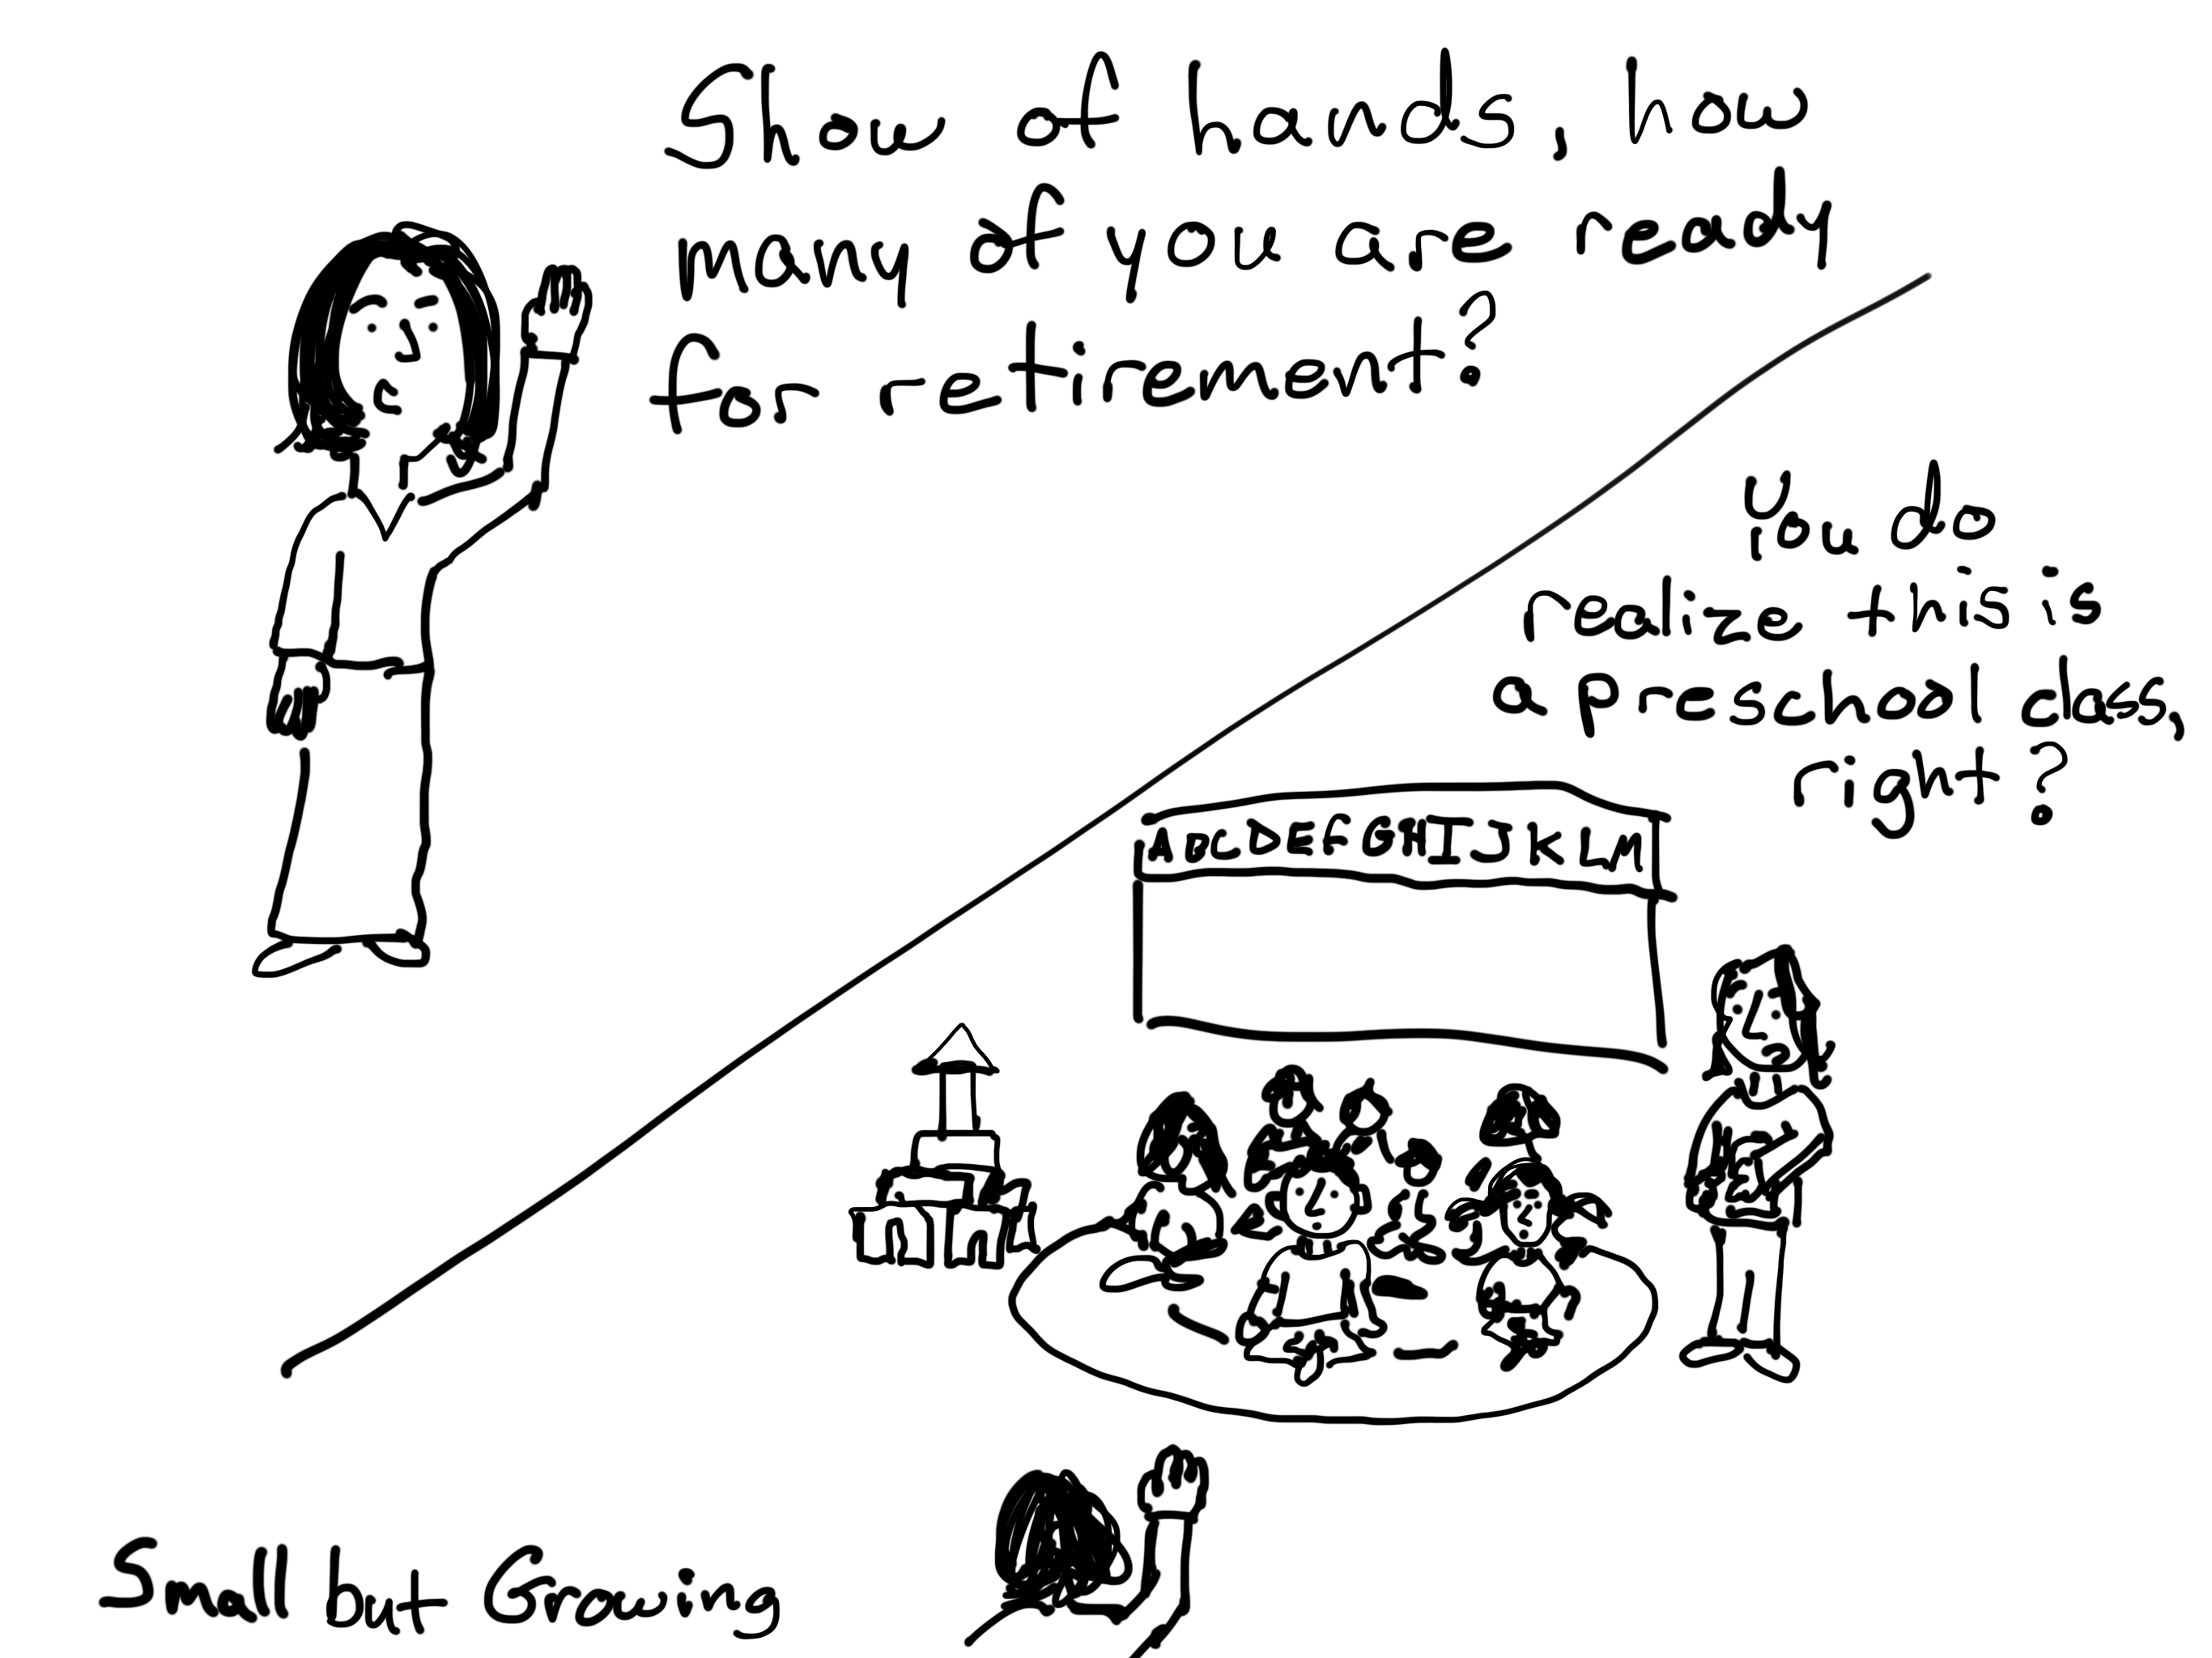 Show of hands, how many of you are ready for retirement? You do realize this is a preschool, right?